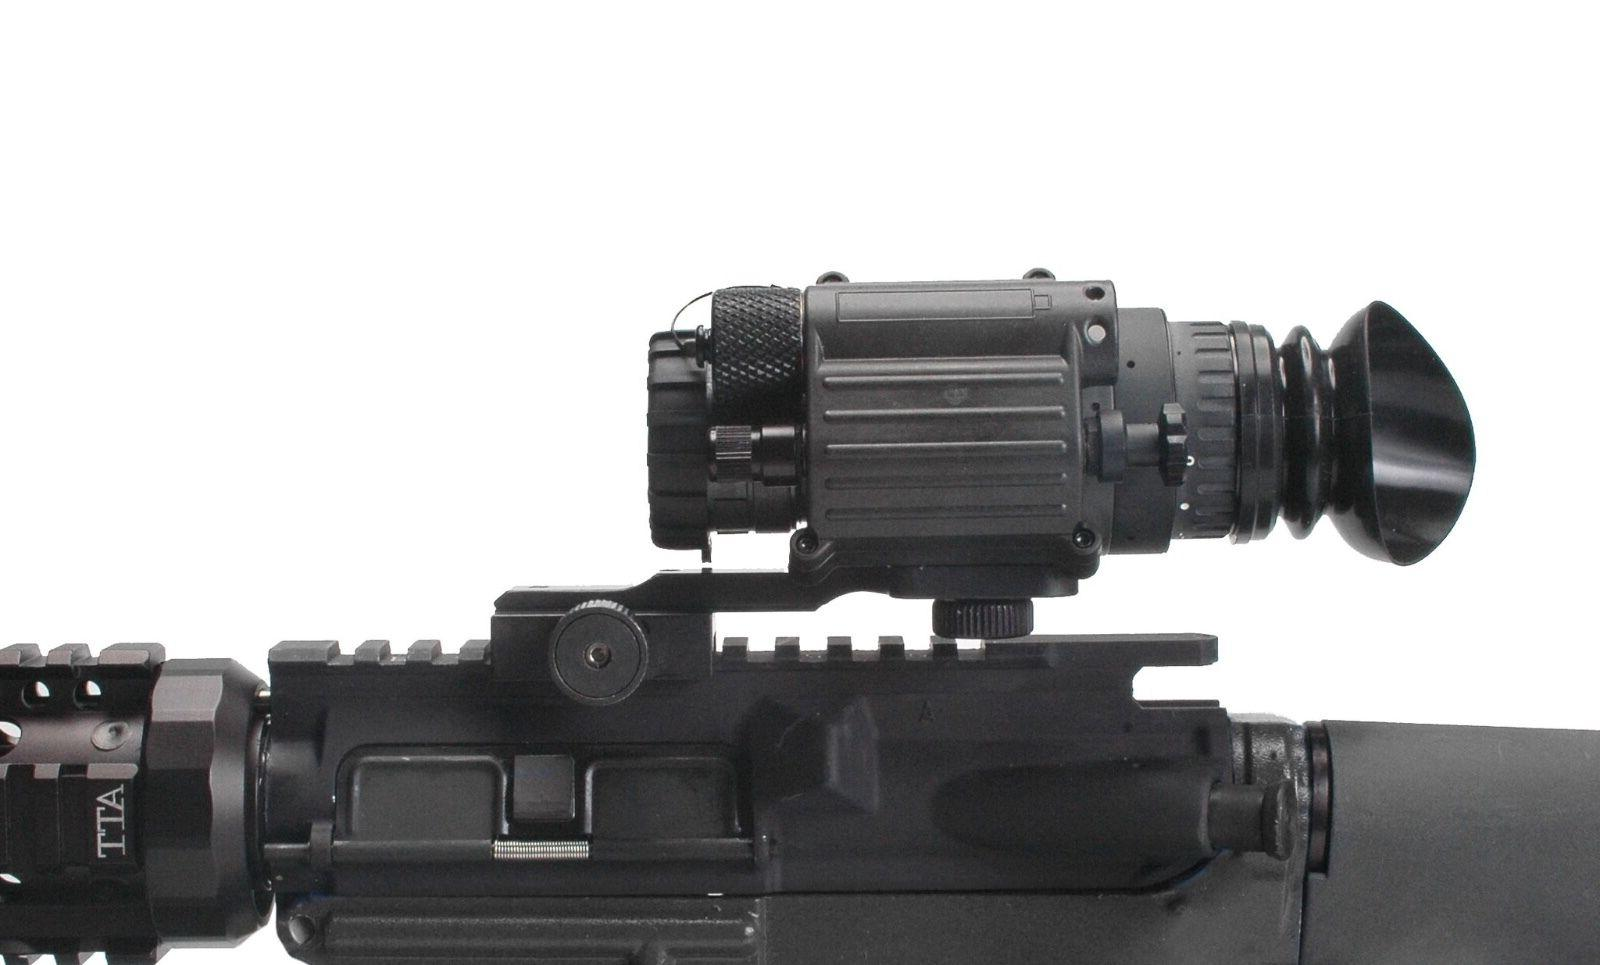 Bering Optics PVS-14BE Gen 2+ w/Built in IR